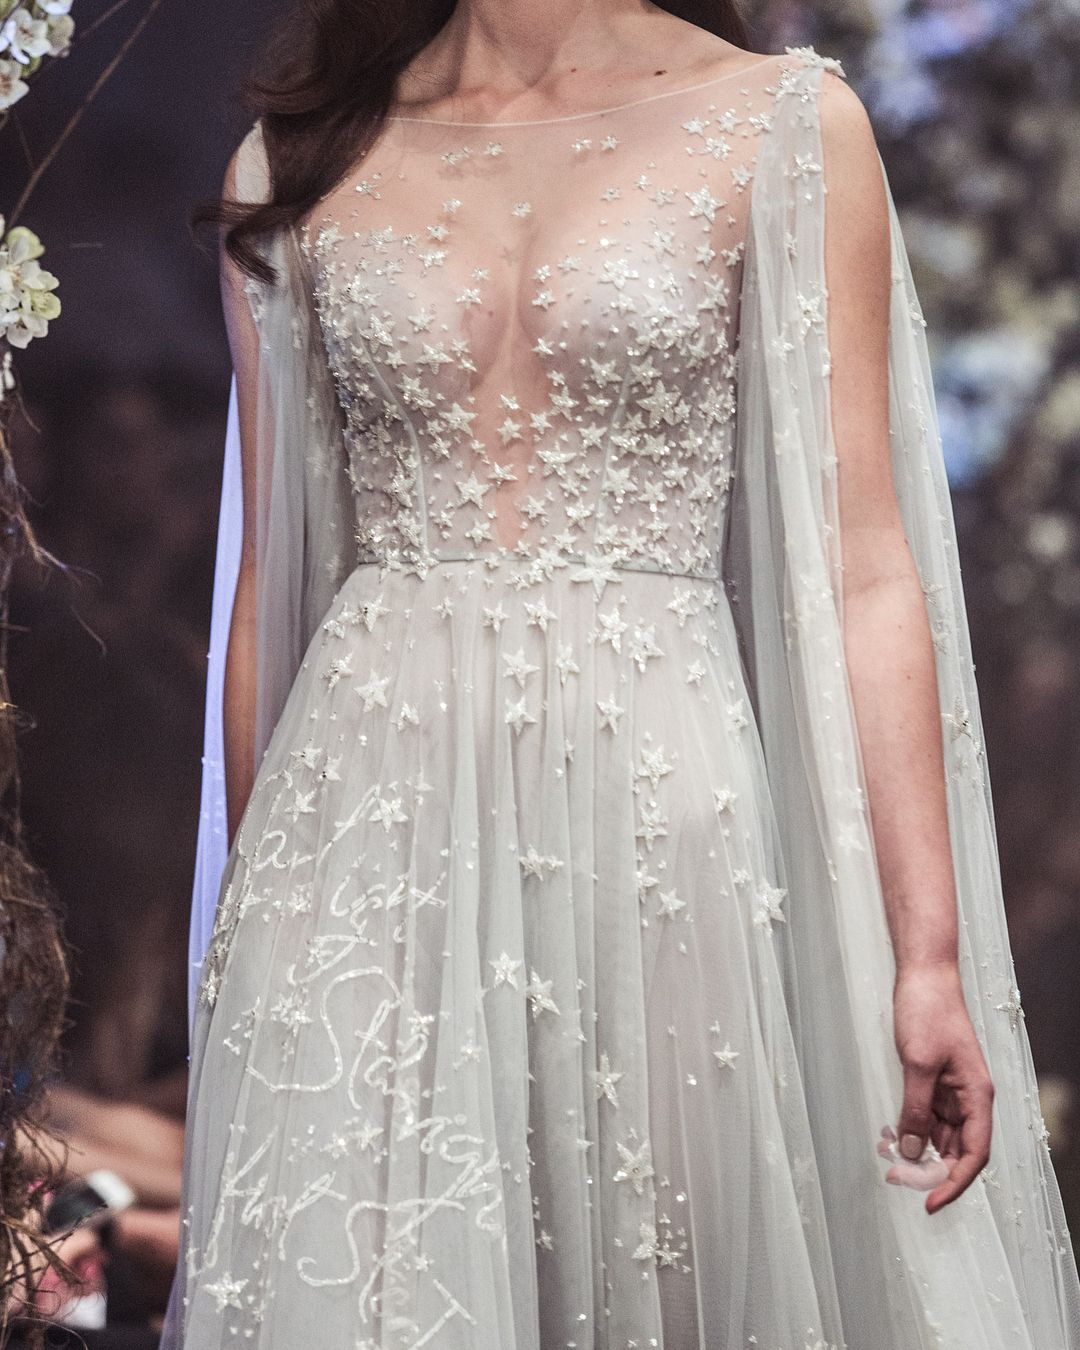 28 8k Likes 176 Comments Paolo Sebastian Paolo Sebastian On